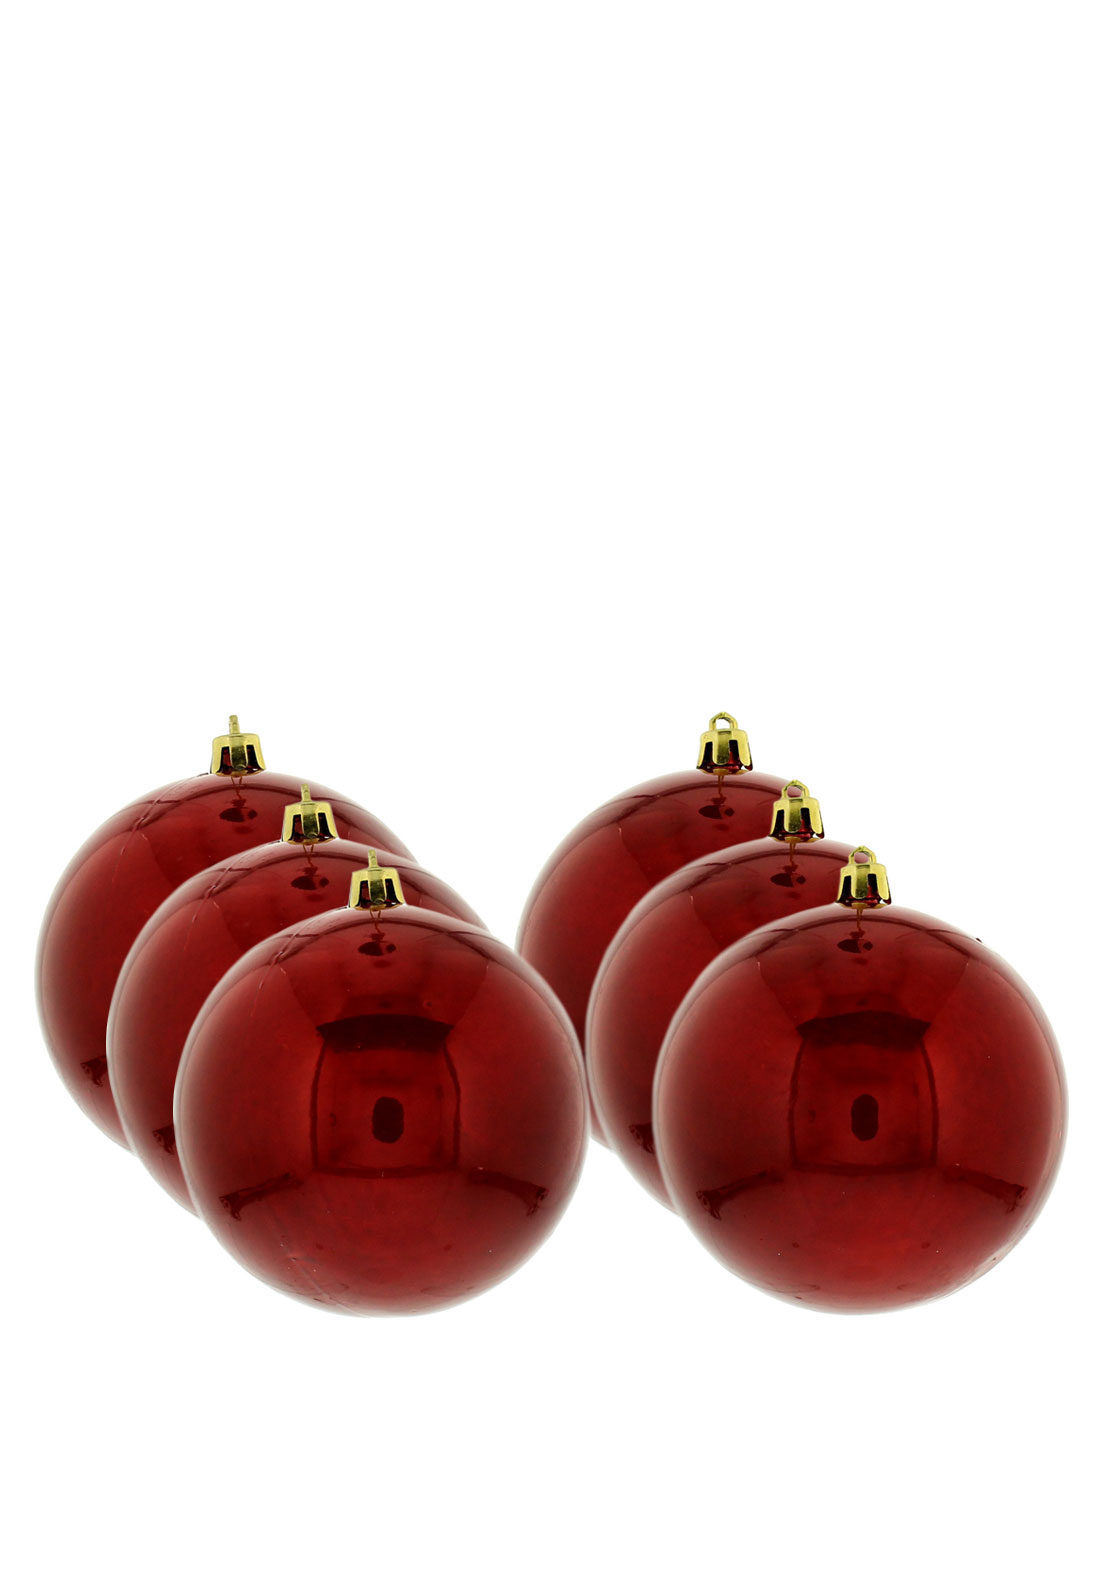 Festive Pack of 6 Large Baubles, Red